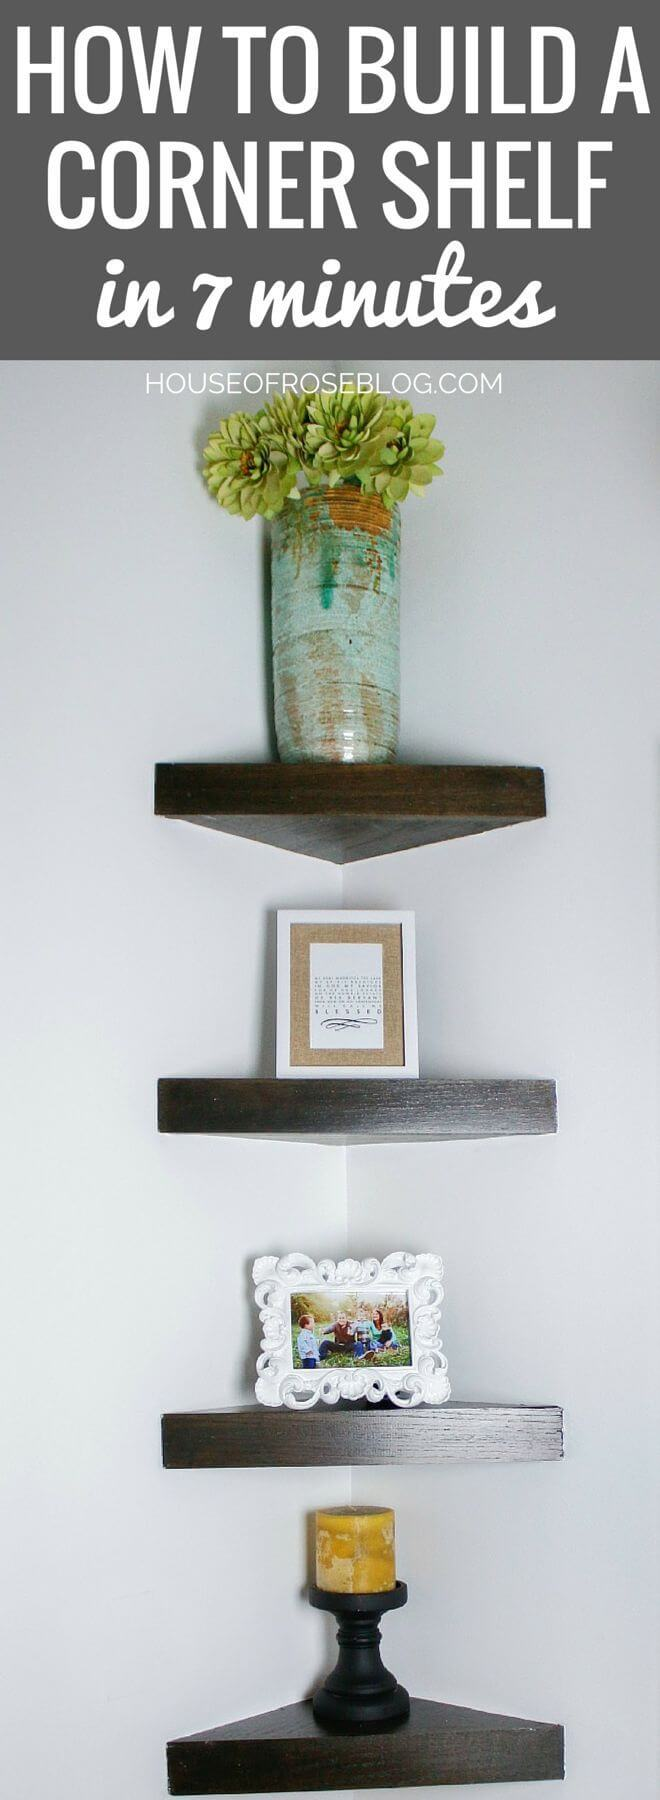 10-Minute Amateur Friendly Corner Shelf Project